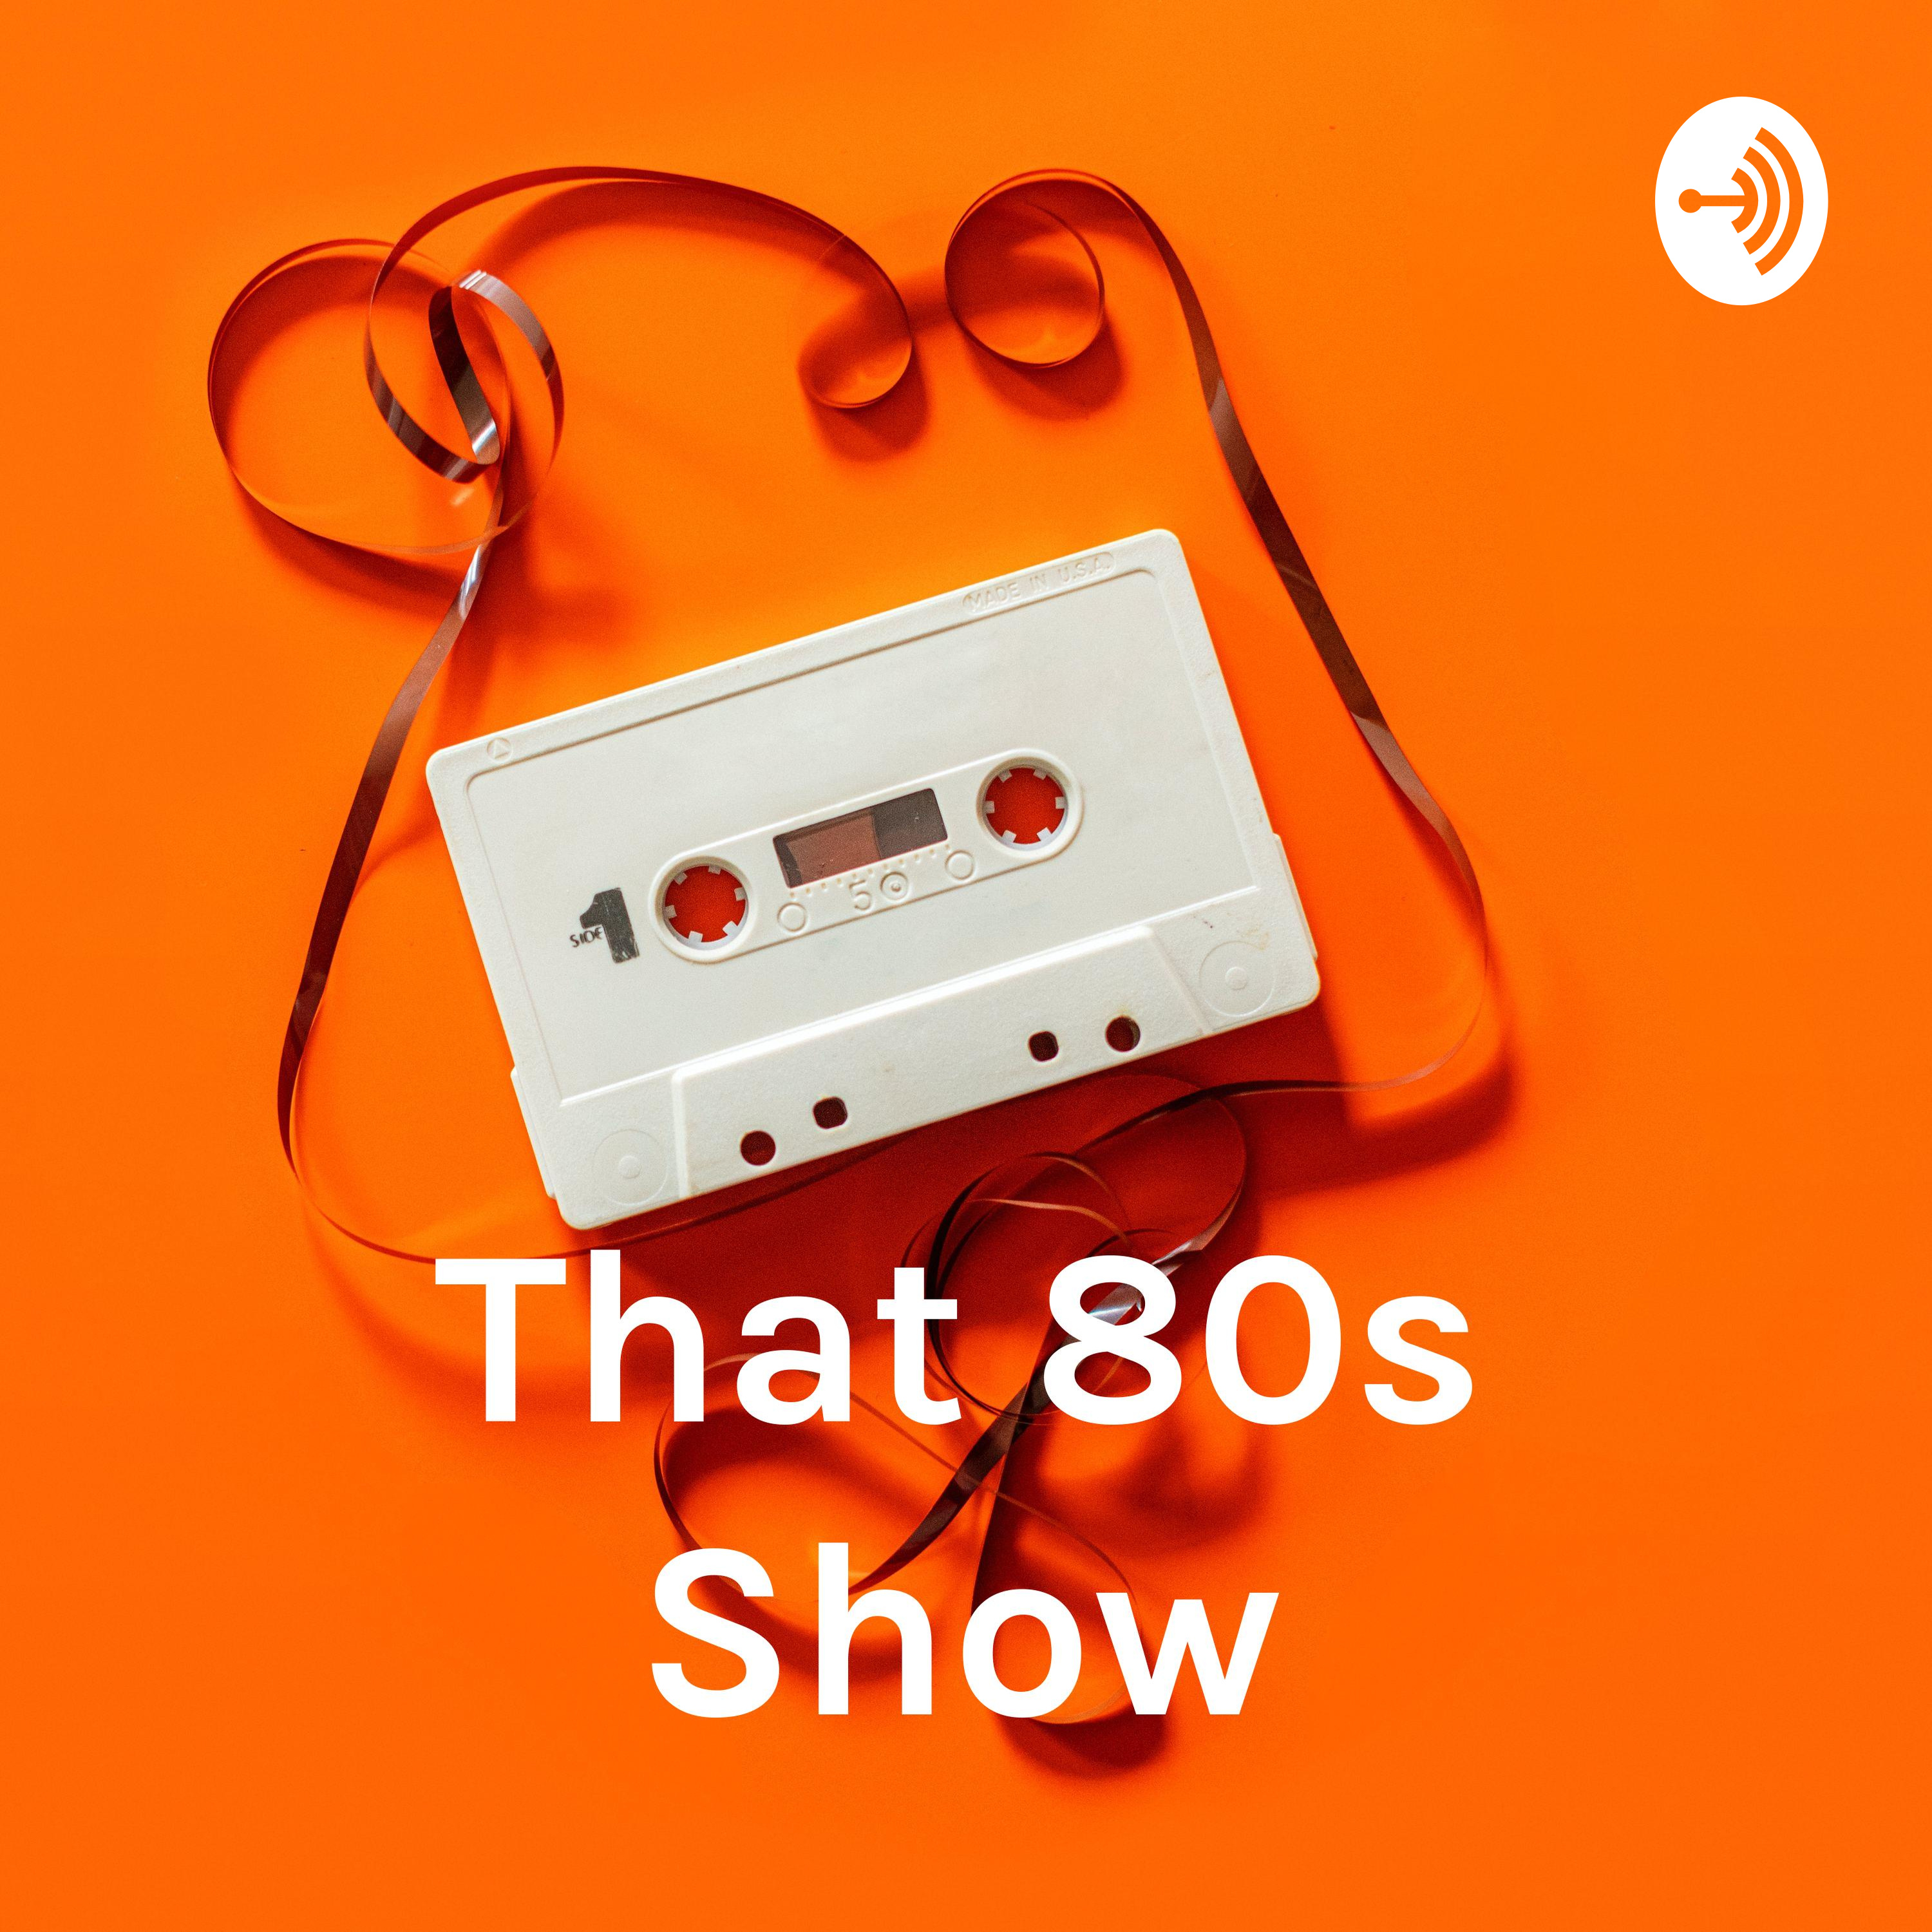 That 80s Show SA - The Podcast